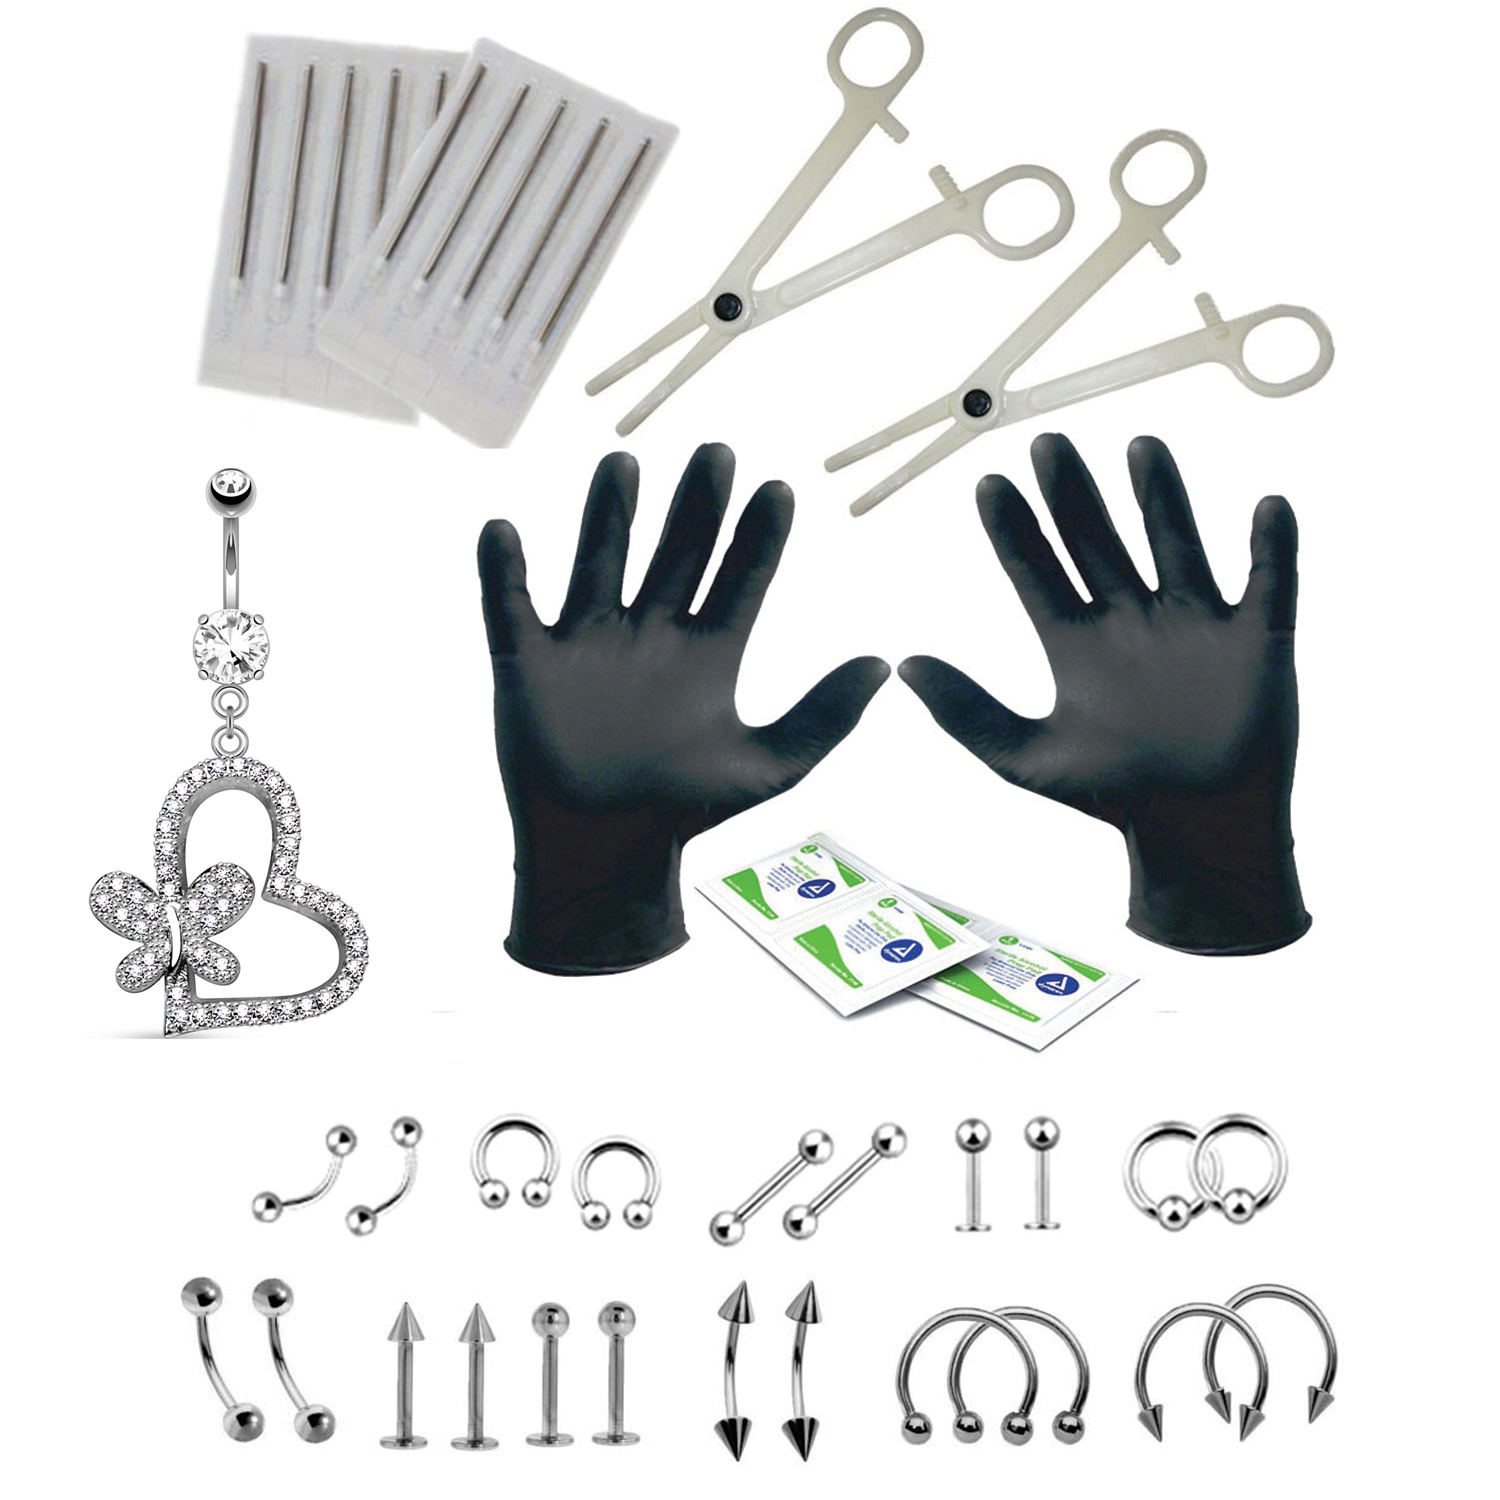 BodyJ4You 36PCS Professional Piercing Kit Steel 14G 16G Lizard Belly Ring Tongue Tragus Nipple Lip Nose Jewelry